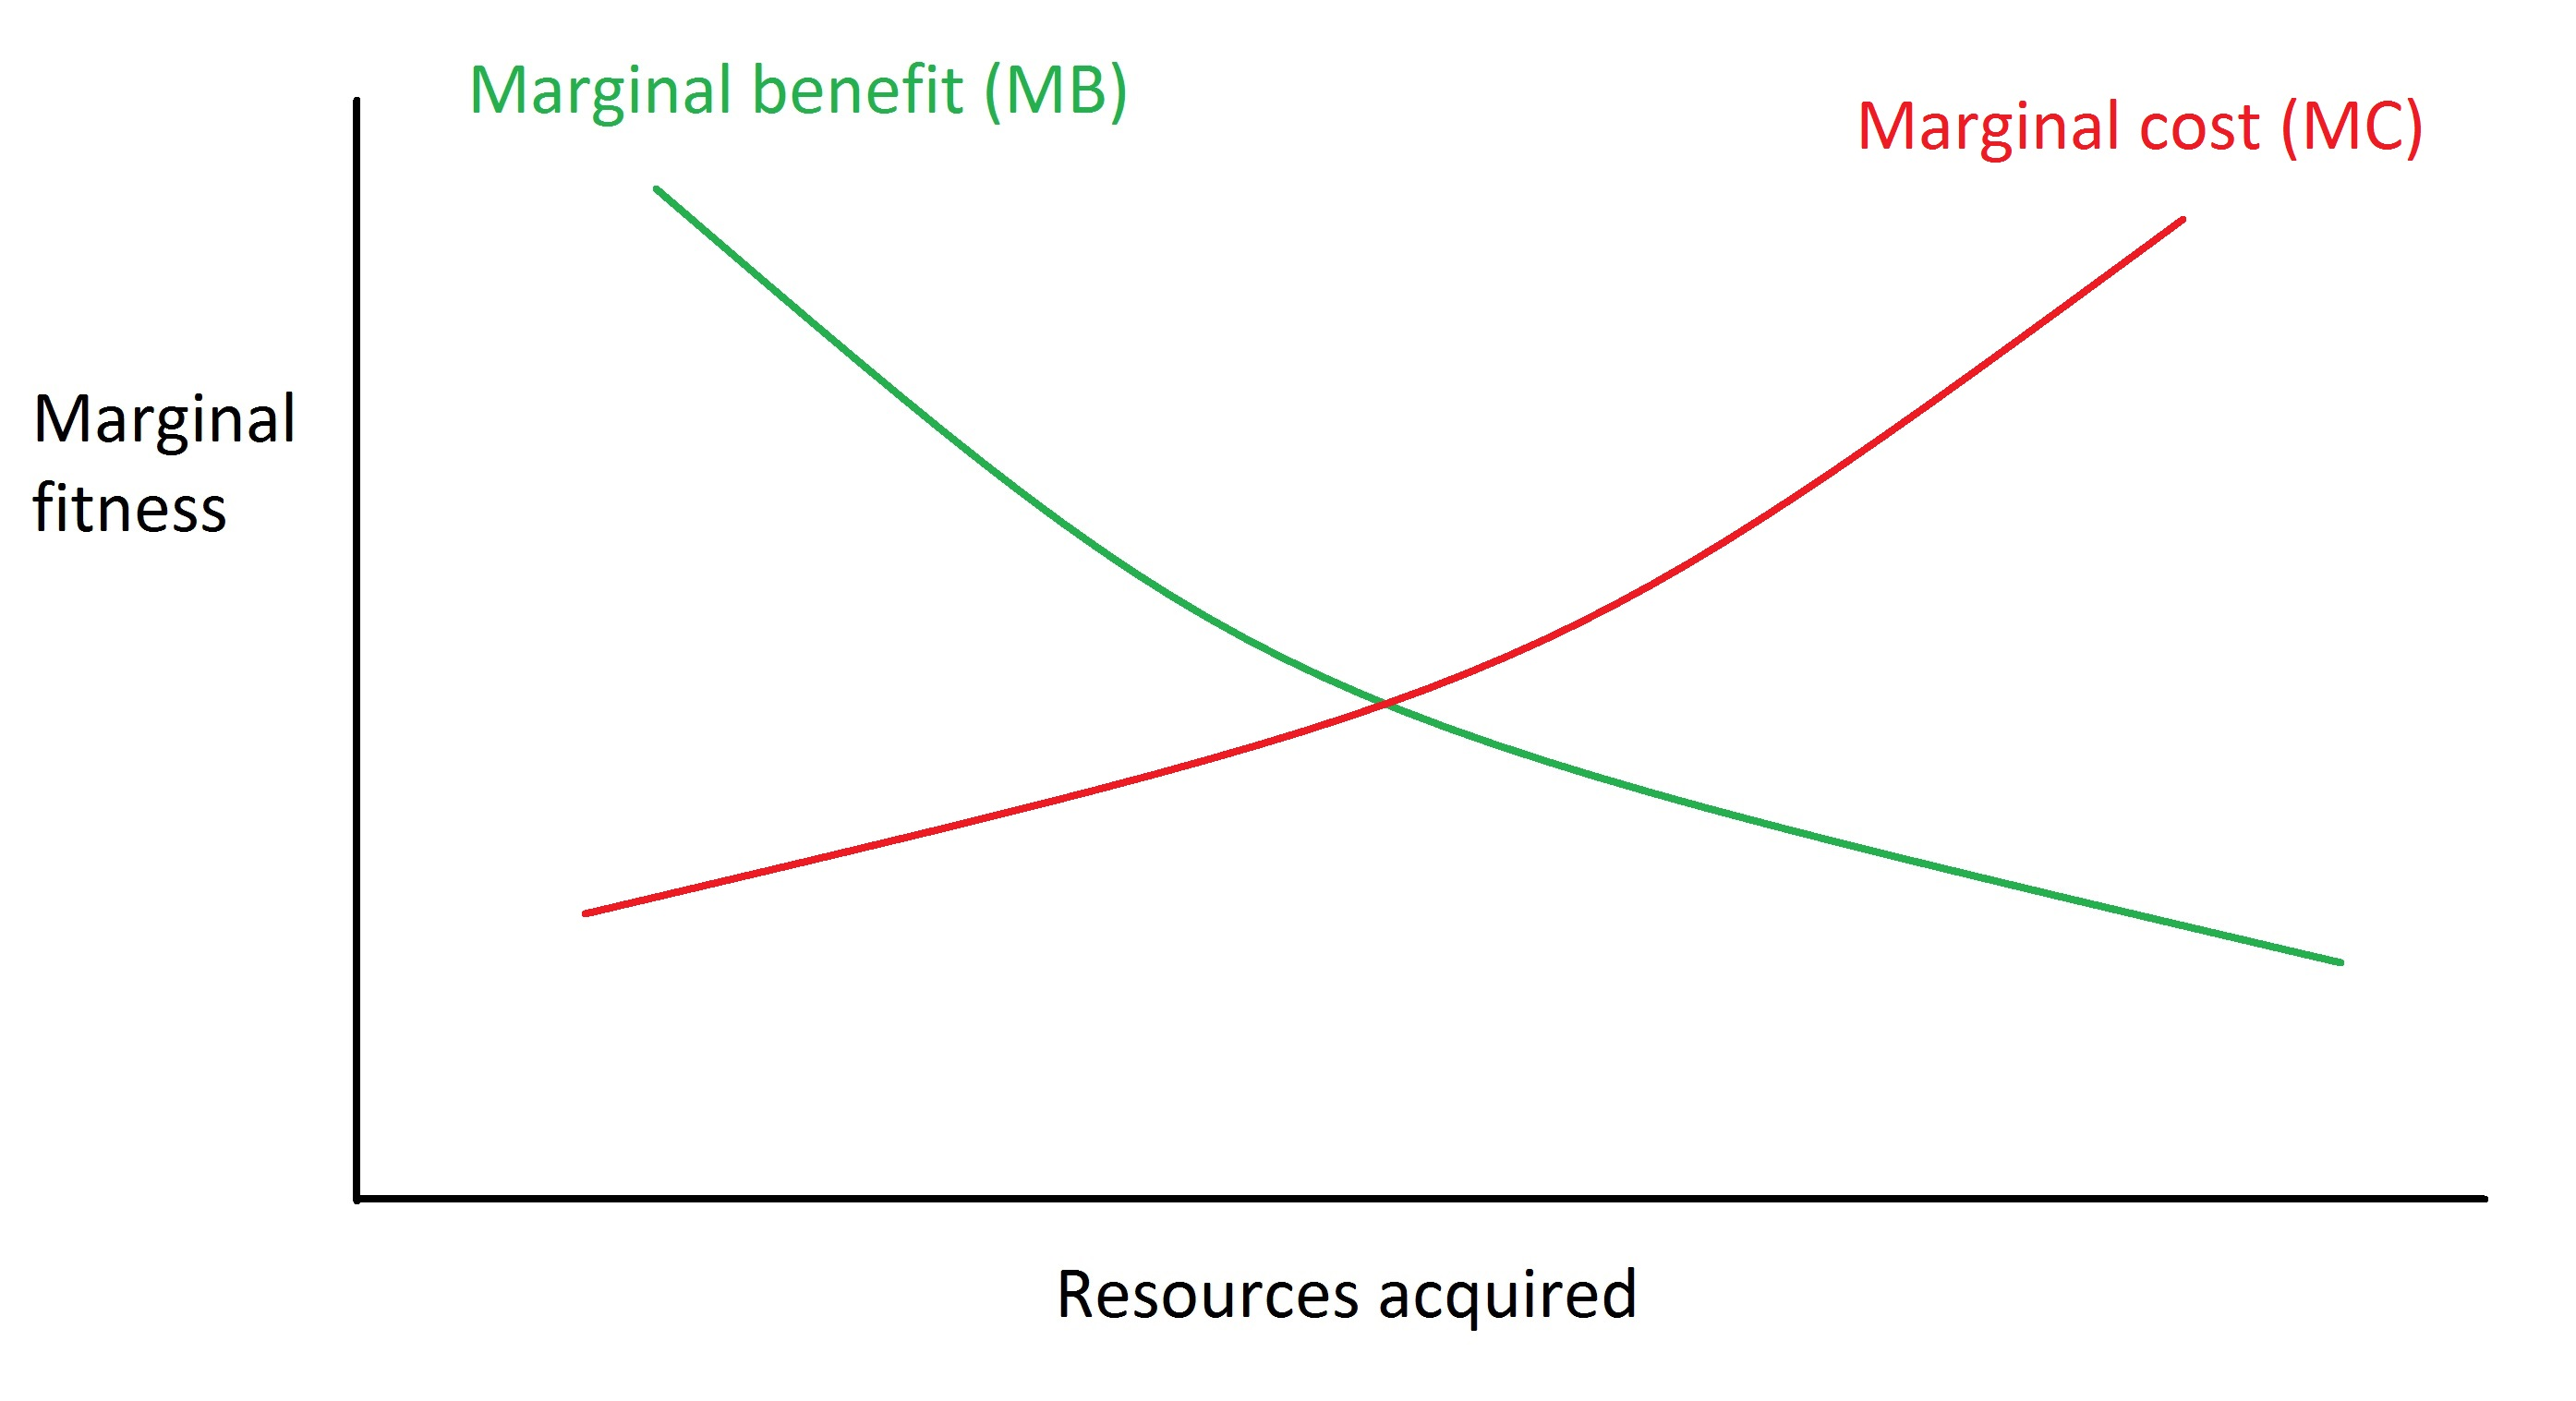 Marginal cost or benefits